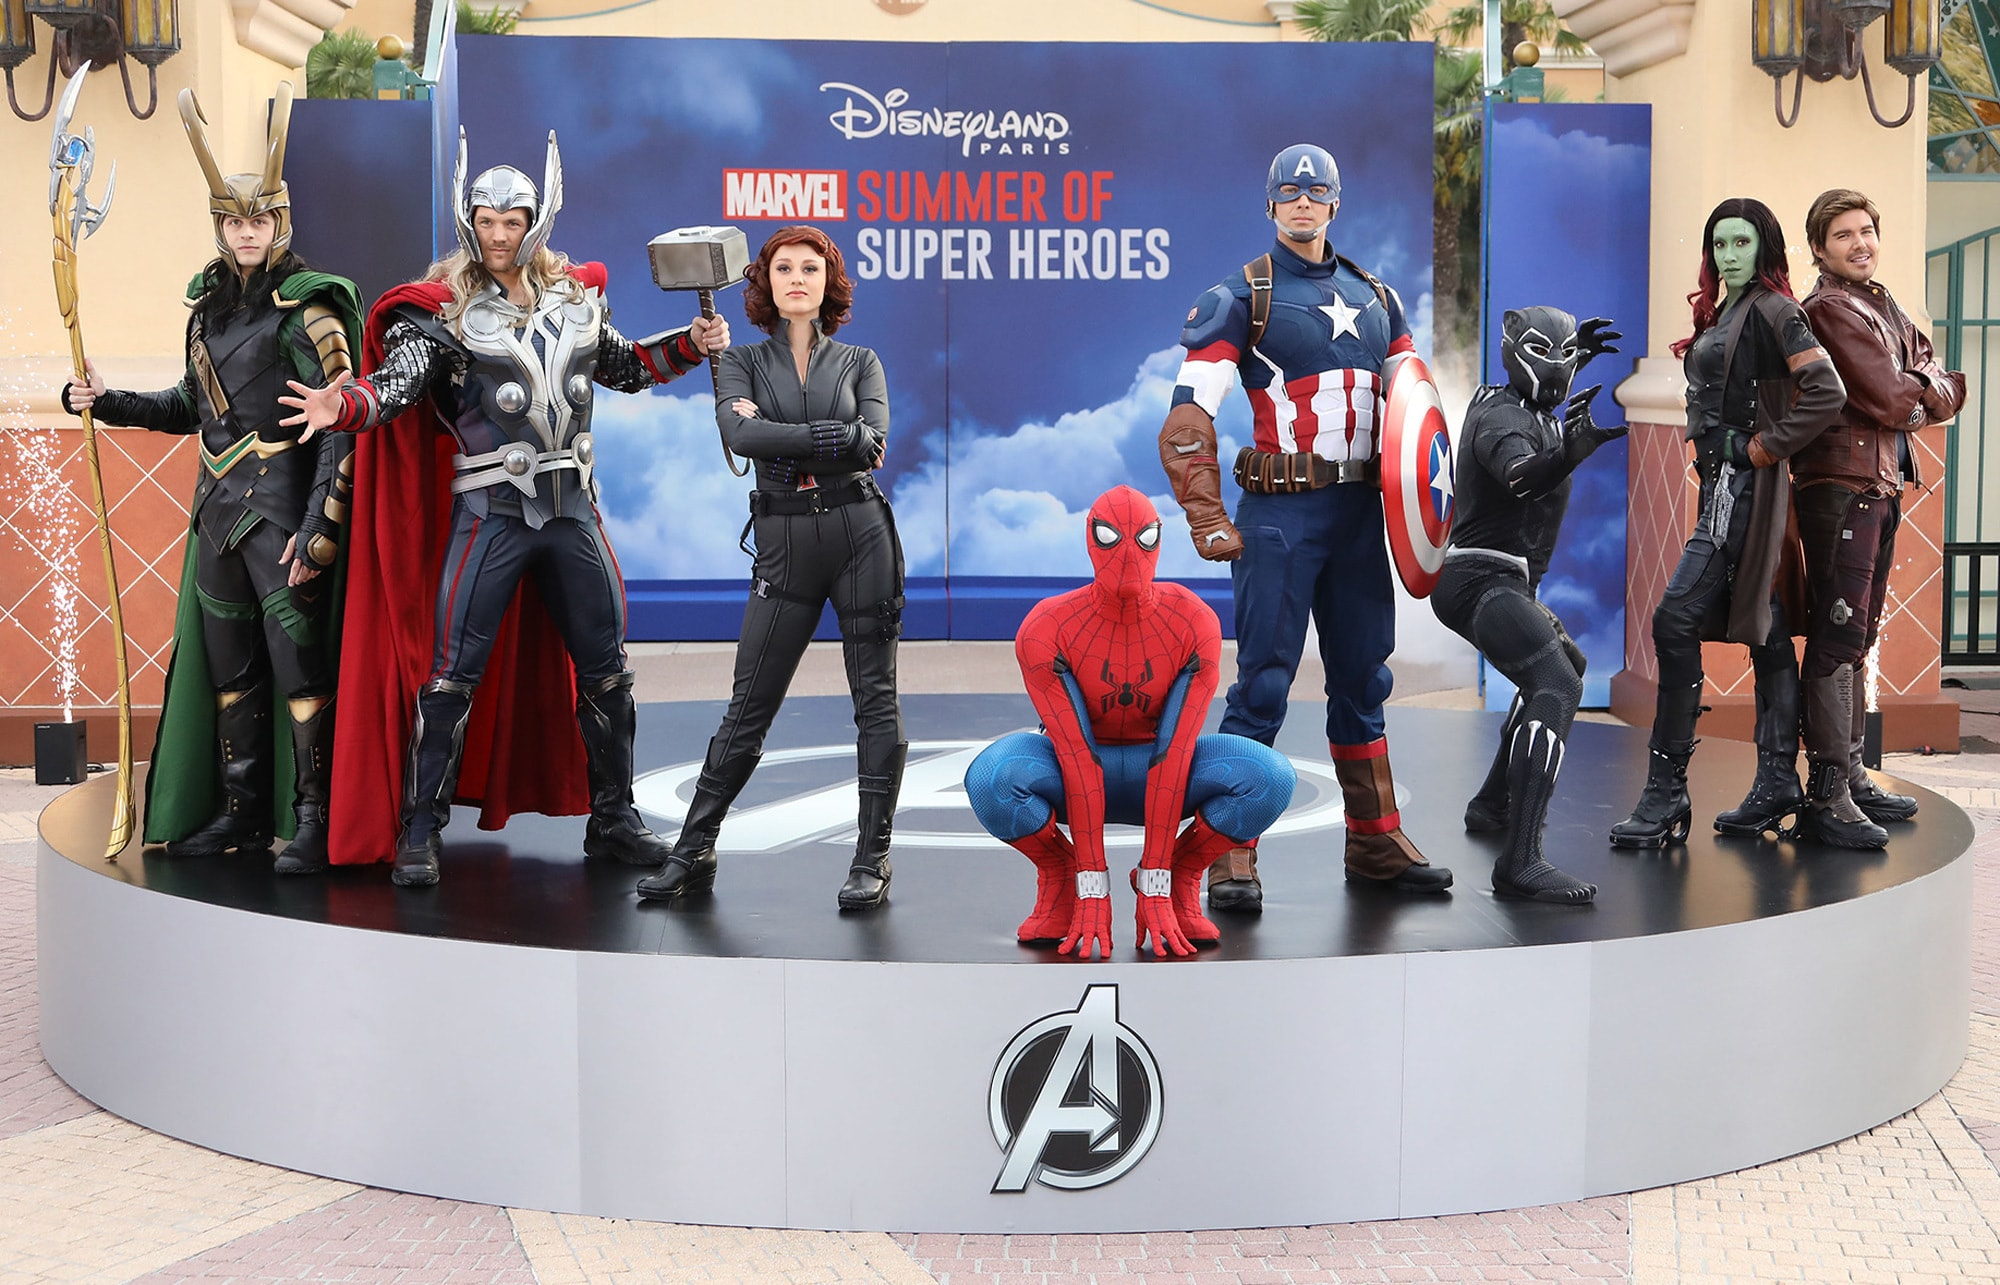 Loki, Thor, Black Widow, Spider-Man, Captain America and Black Panther at Marvel Summer of Super Heroes